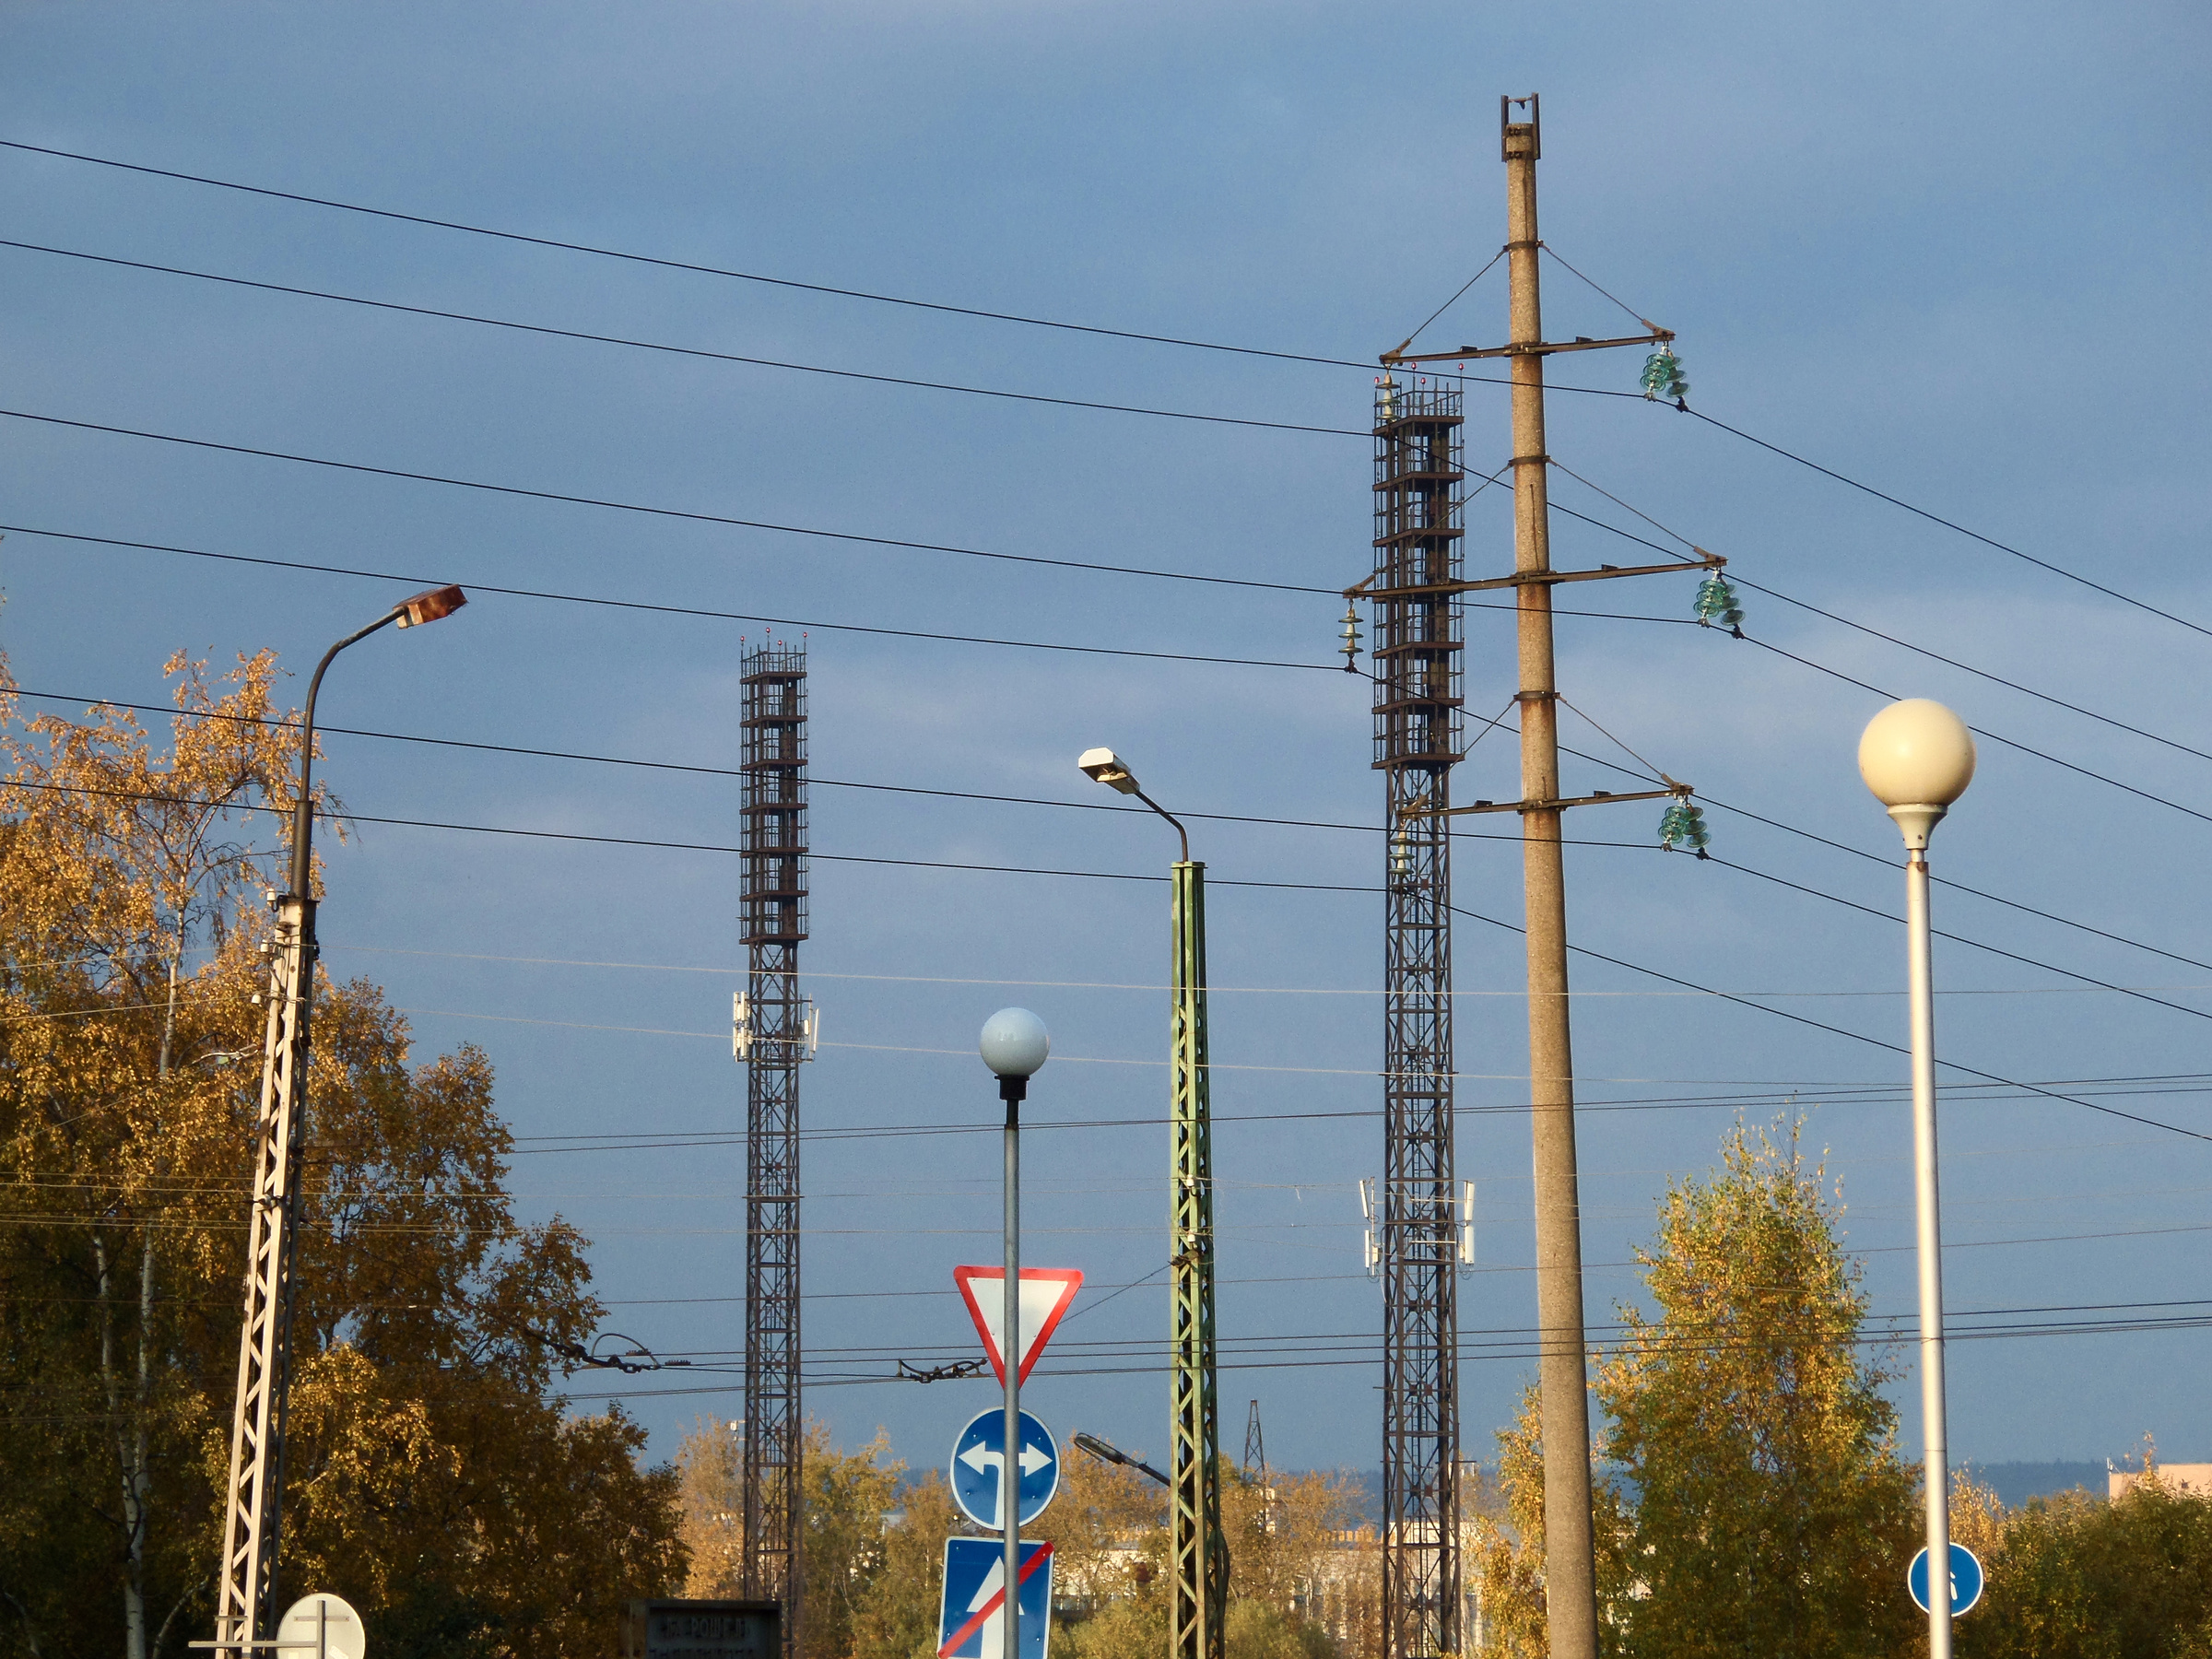 Lamps, poles and wires, Blue, Poles, Urban, Trees, HQ Photo